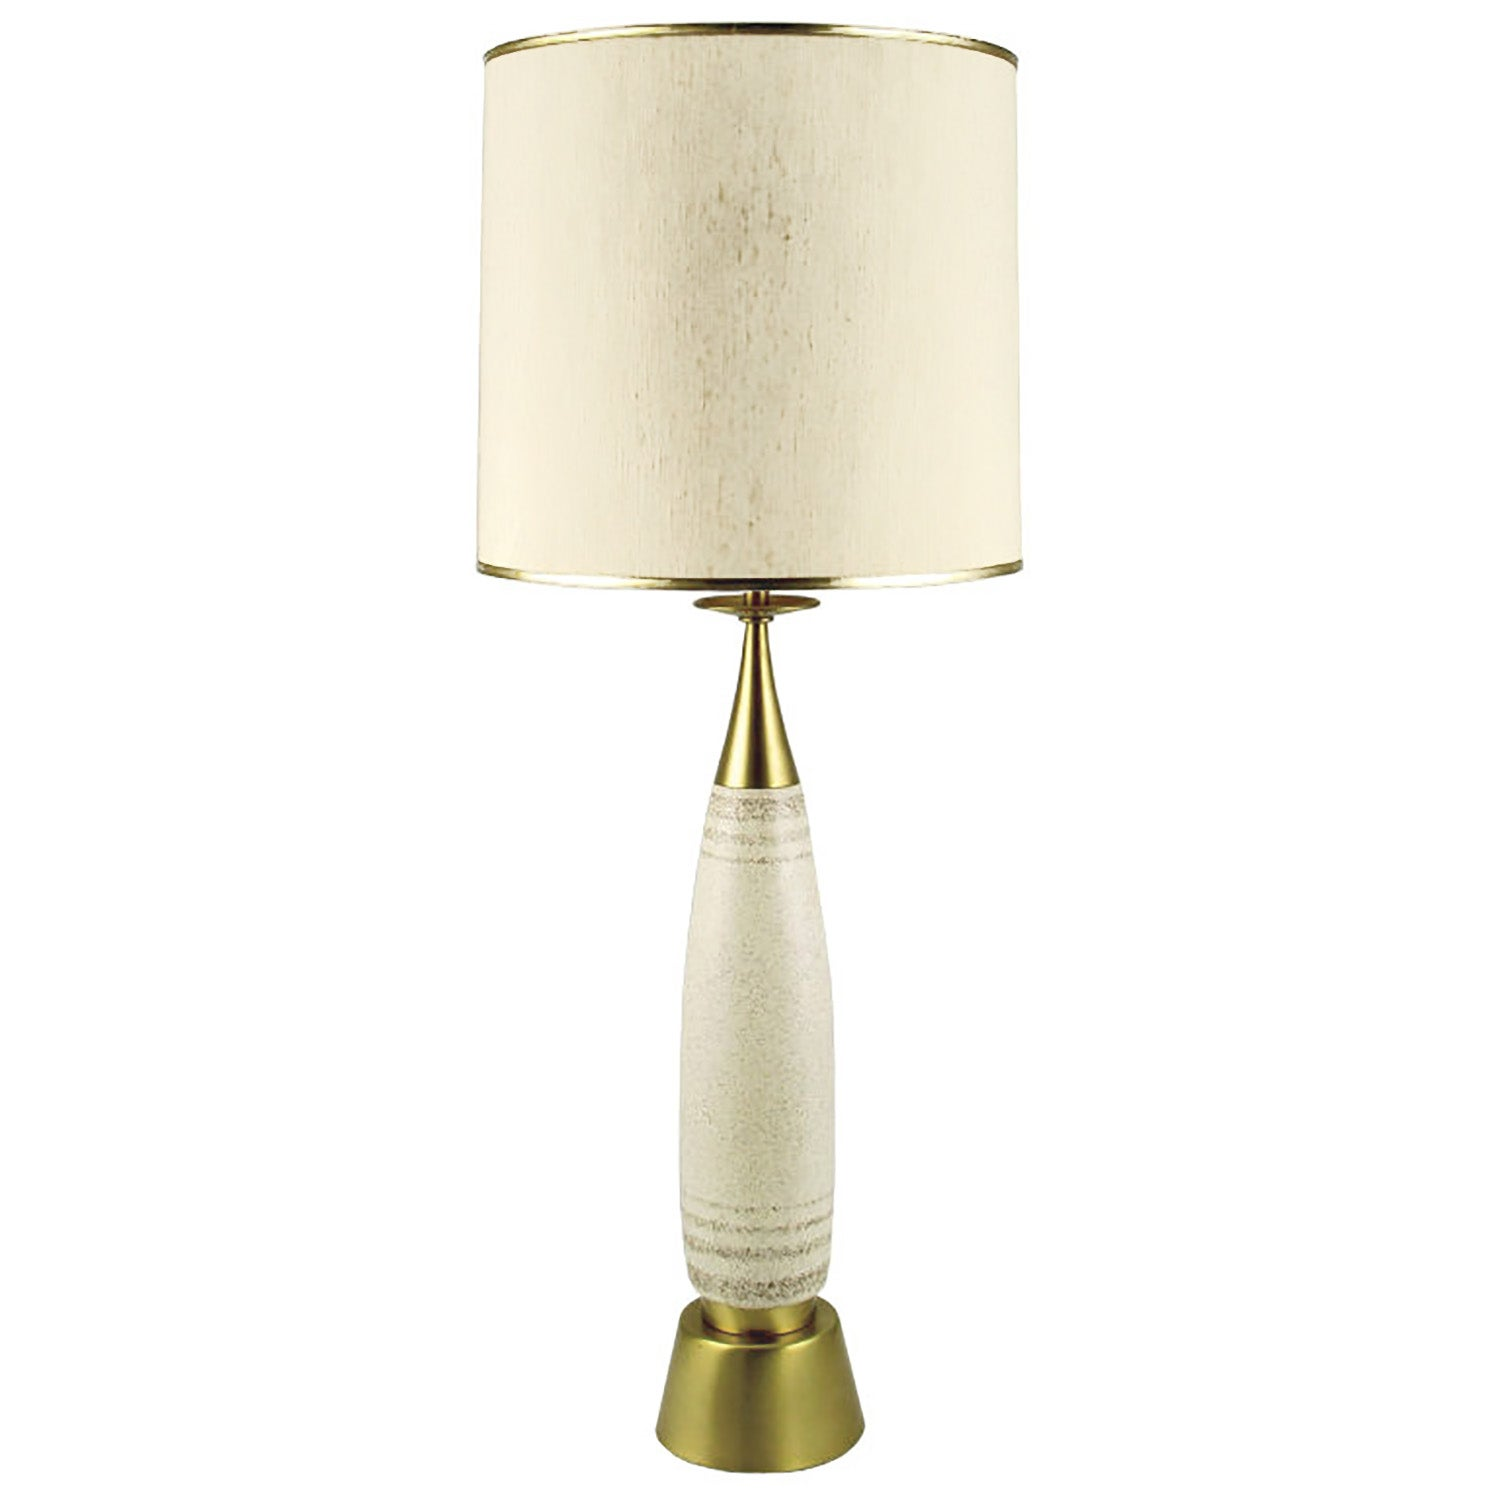 Tall Rembrandt Brass and Glazed Pottery Table Lamp